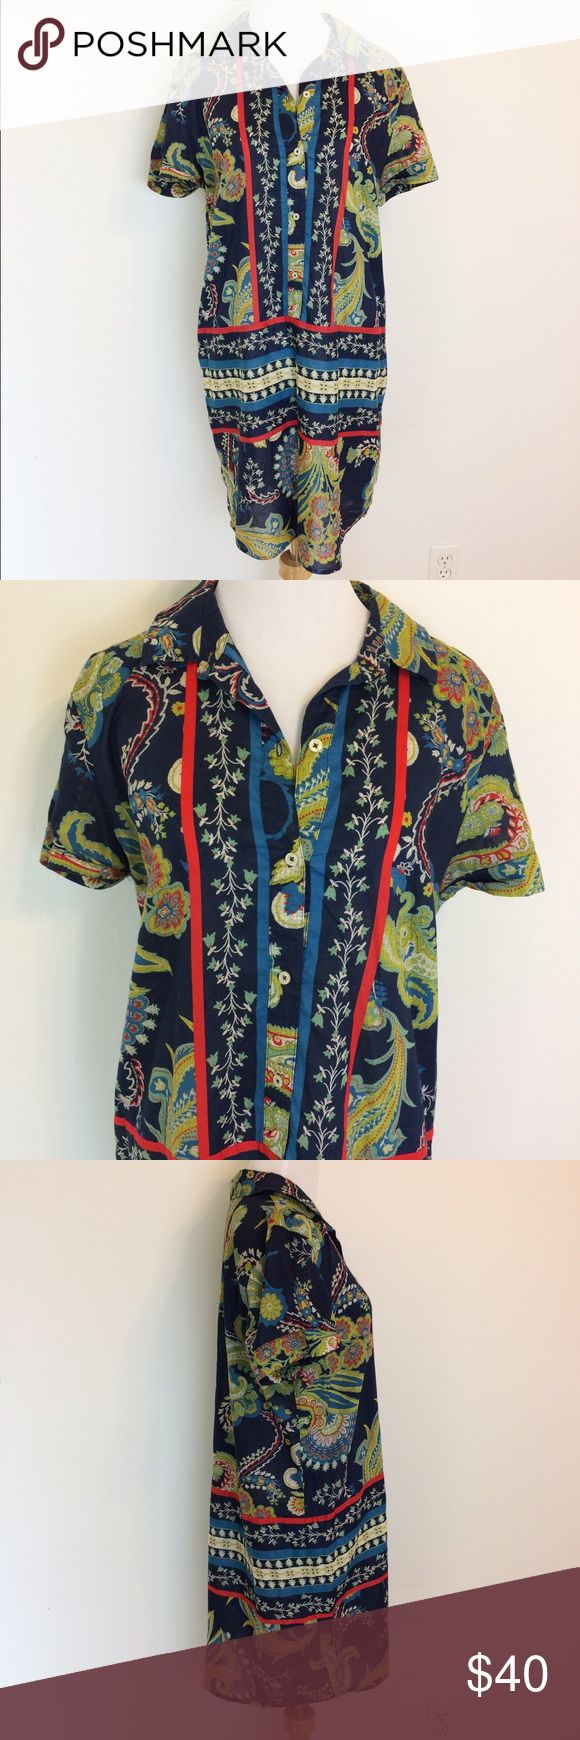 """Tommy Hilfiger Colorful Oriental Shirt Dress Beautiful Tommy Hilfiger dress. Collar and 4 buttons in front. Very light and breezy. Size Large. Underarm measurement is 22"""". Length is 34"""". 100% cotton. Tommy Hilfiger Dresses"""